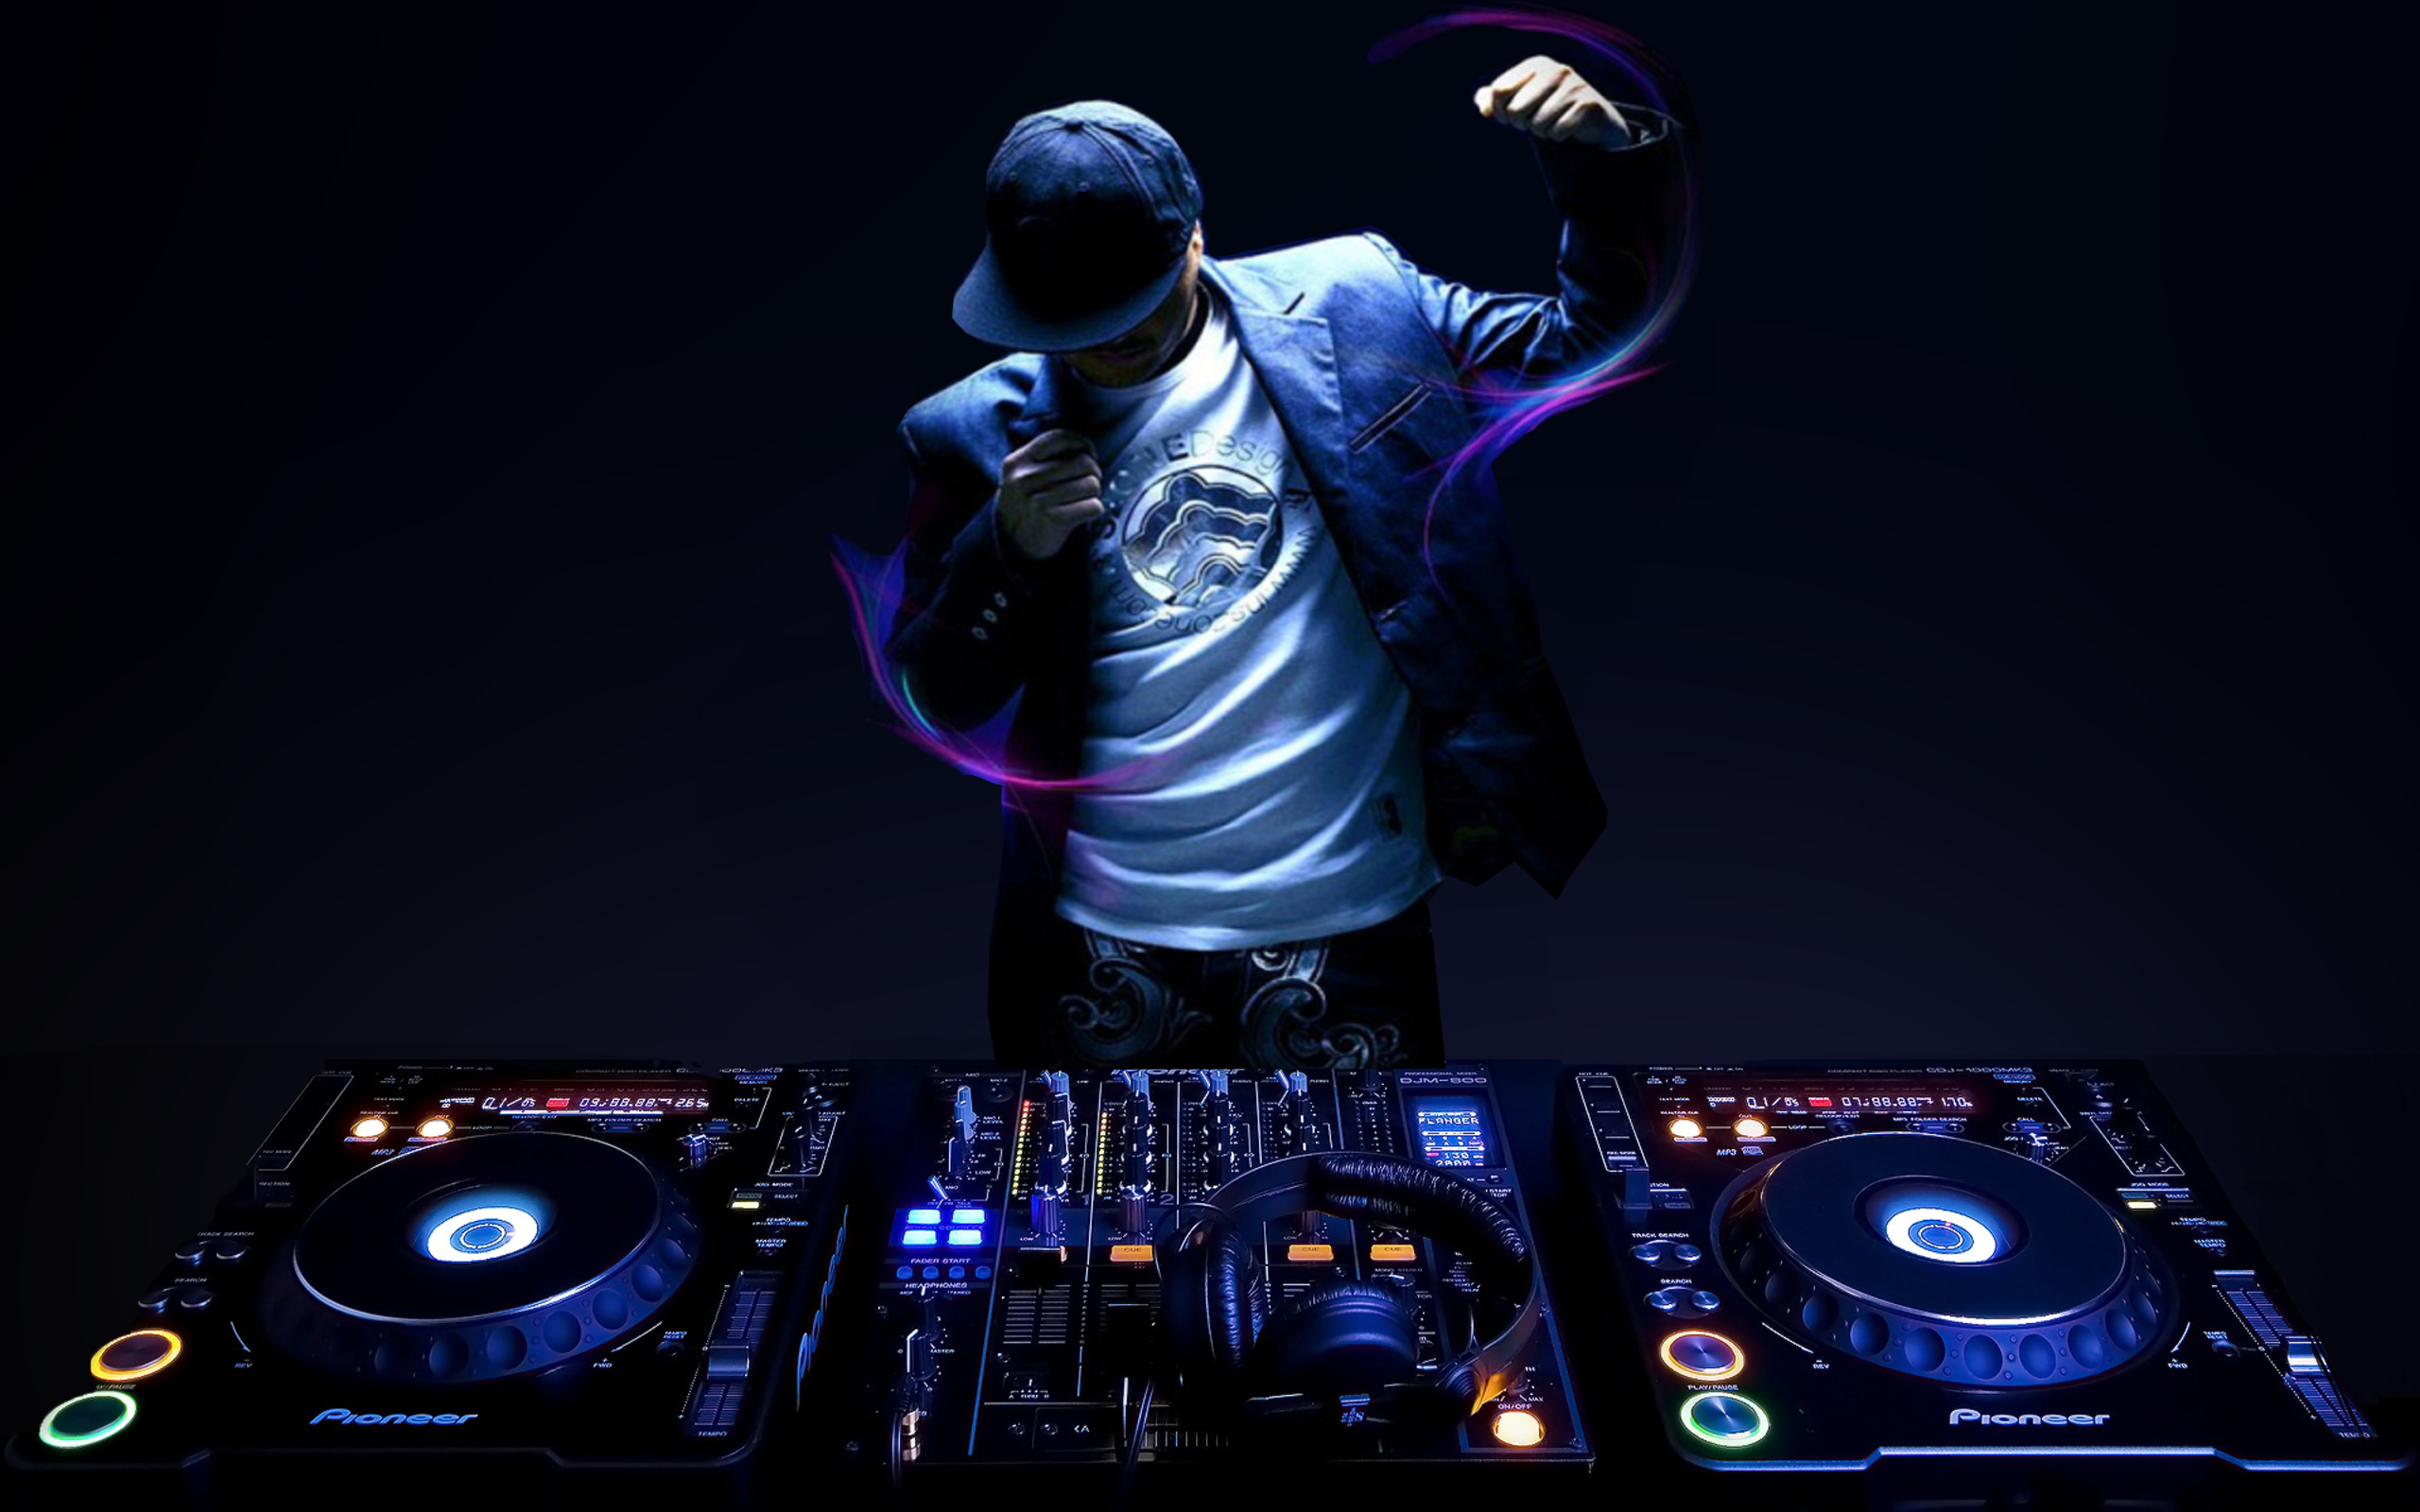 dj wallpaper download